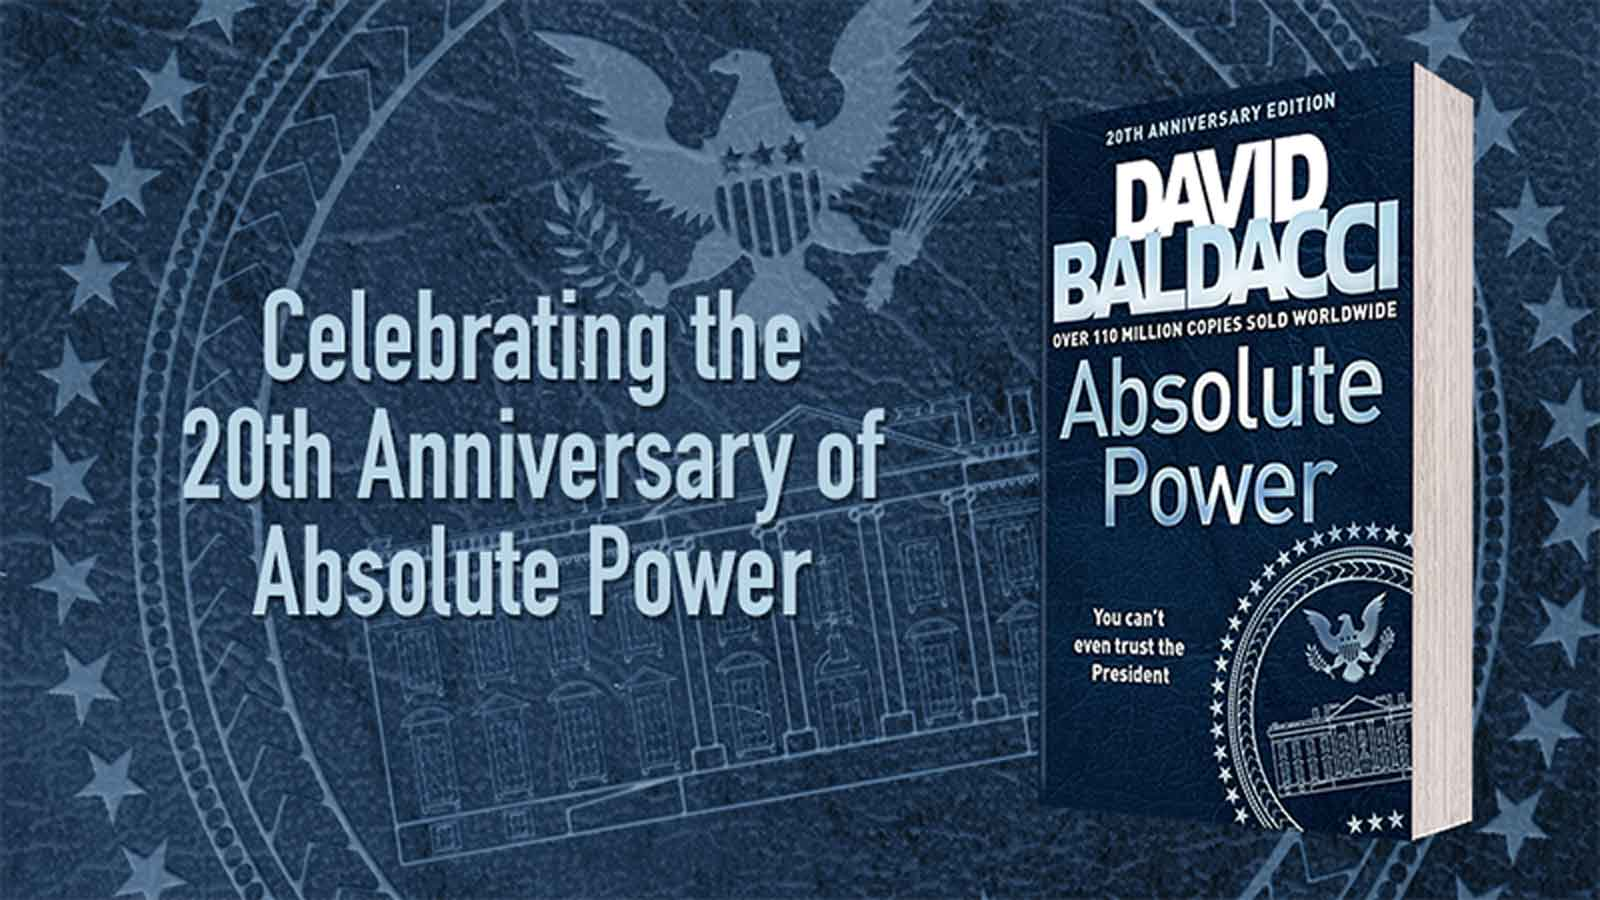 the words: Celebrating the 20th anniversary of Absolute Power next to the Absolute Power book cover